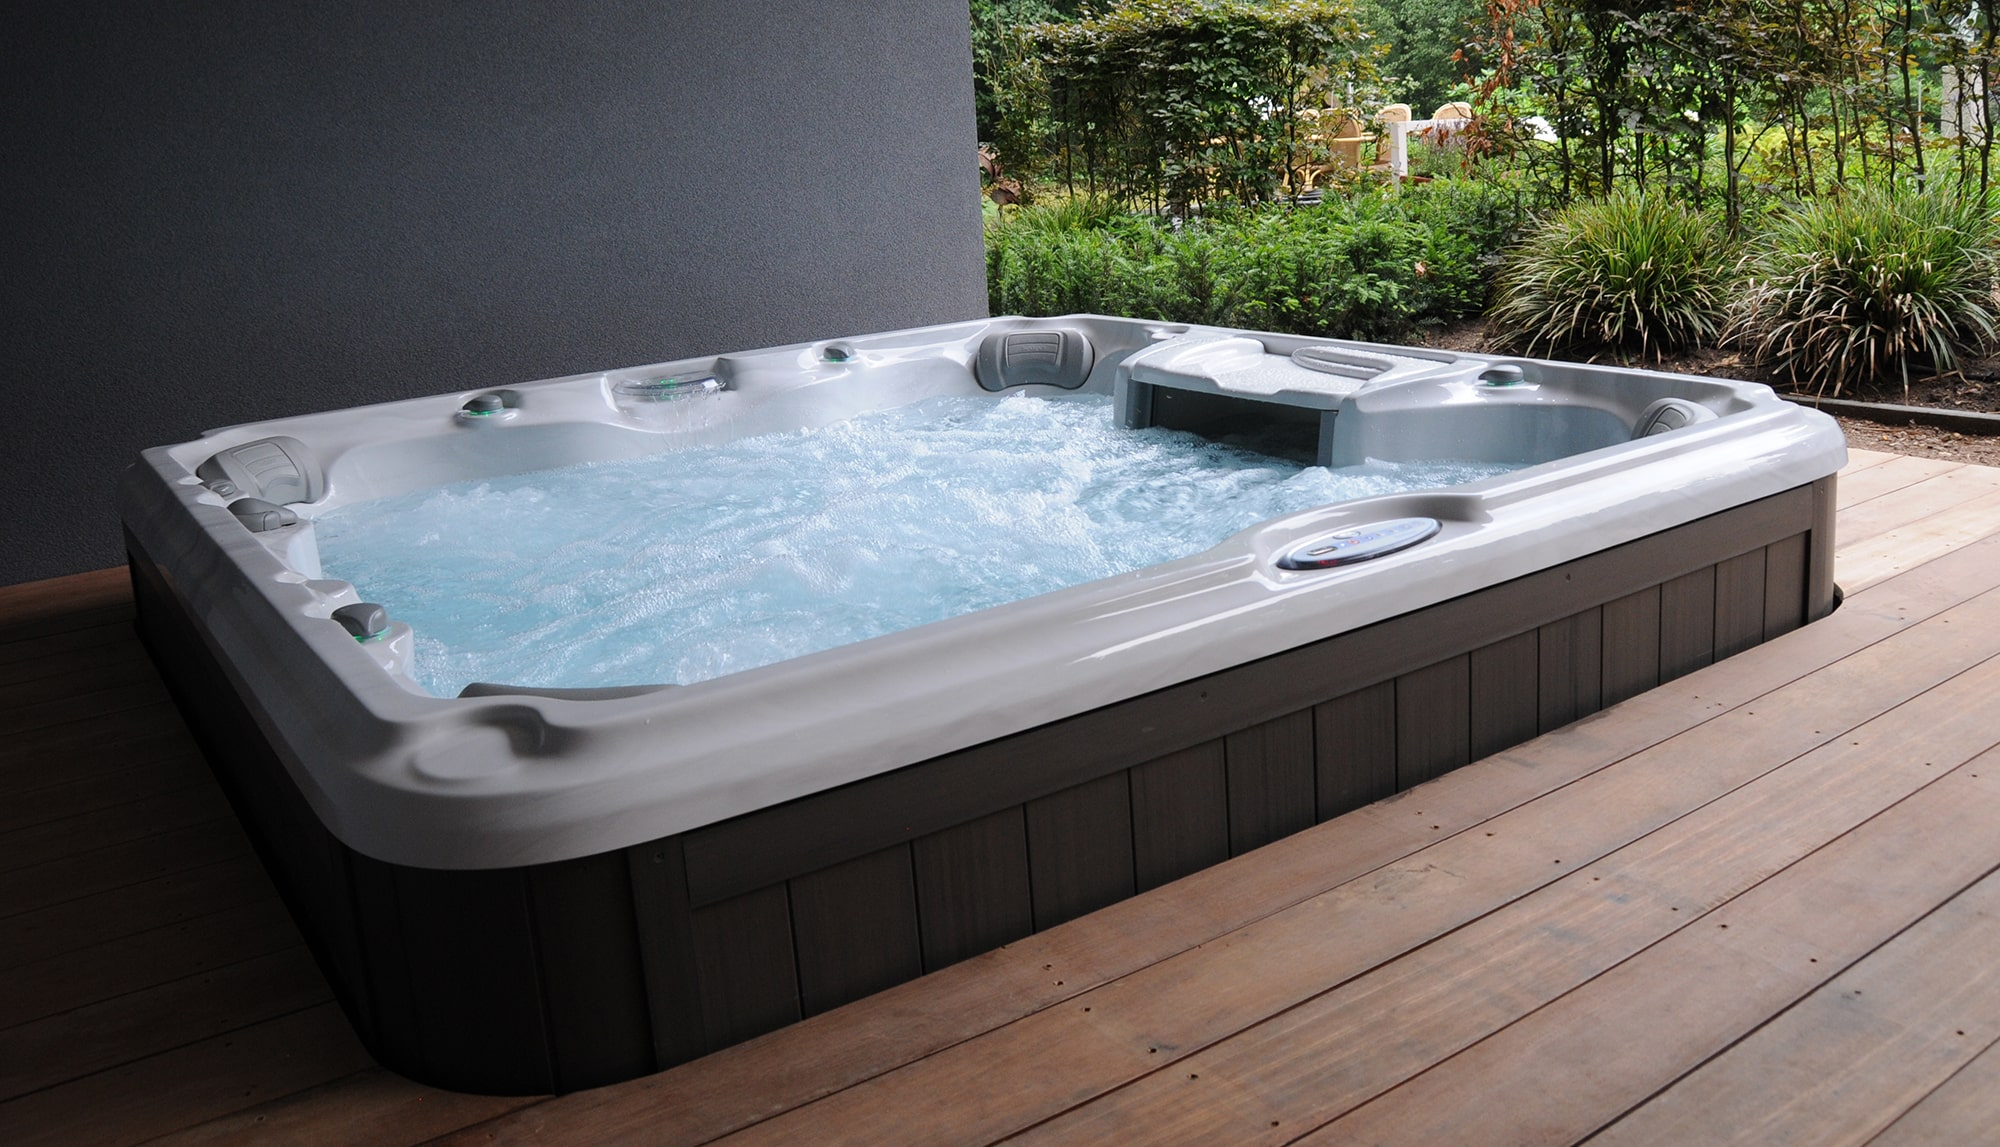 Sundance Spas installation in Redding, California